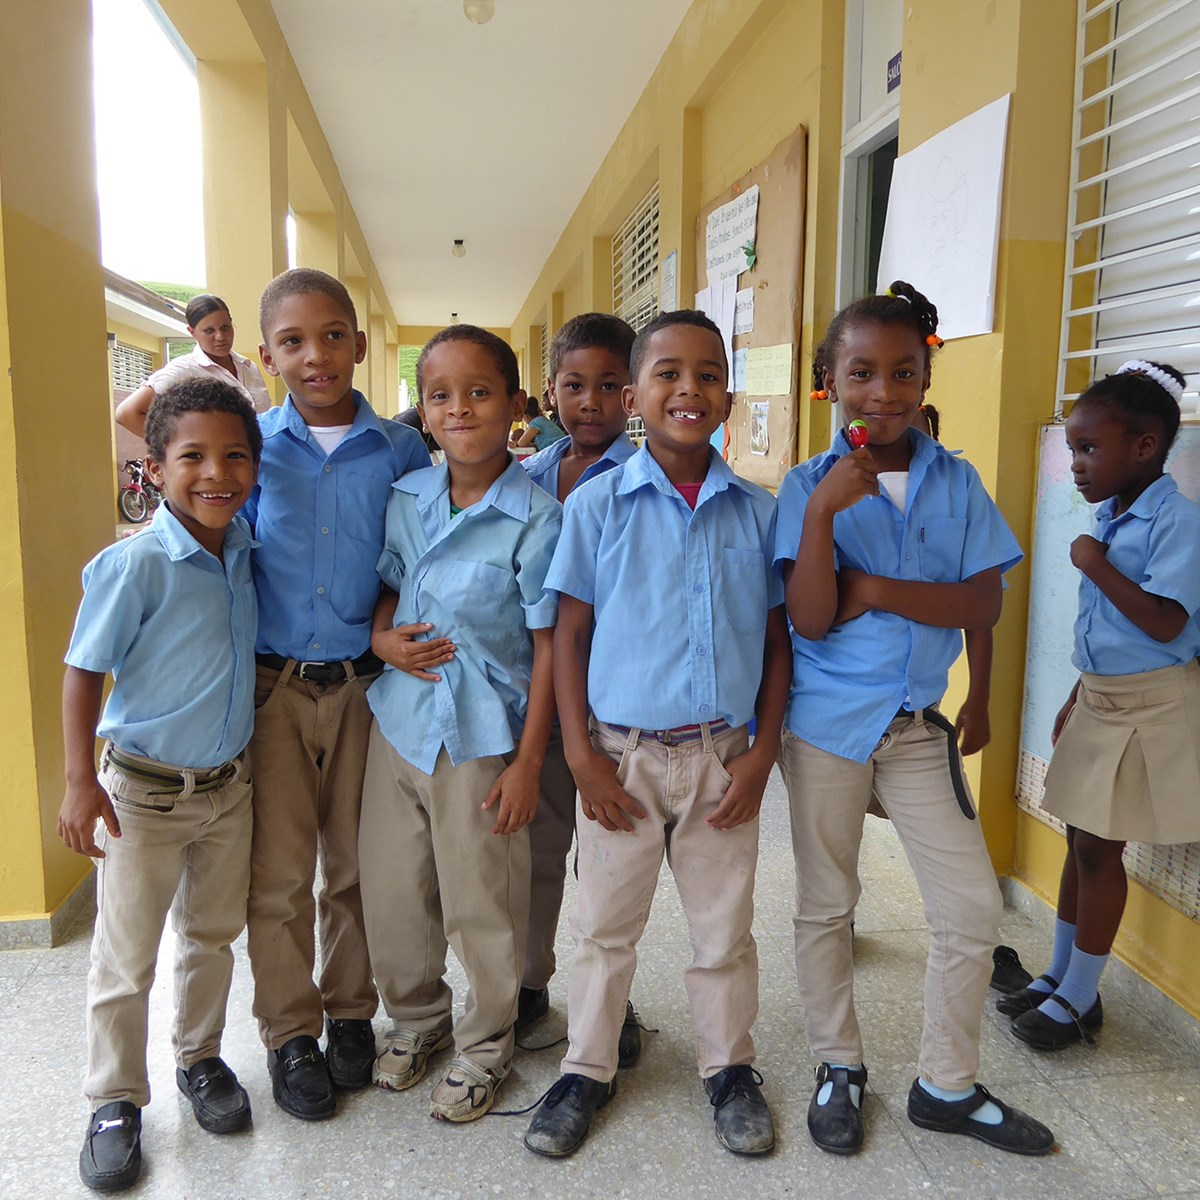 School age children in the Dominican Republish pose for a group photo.